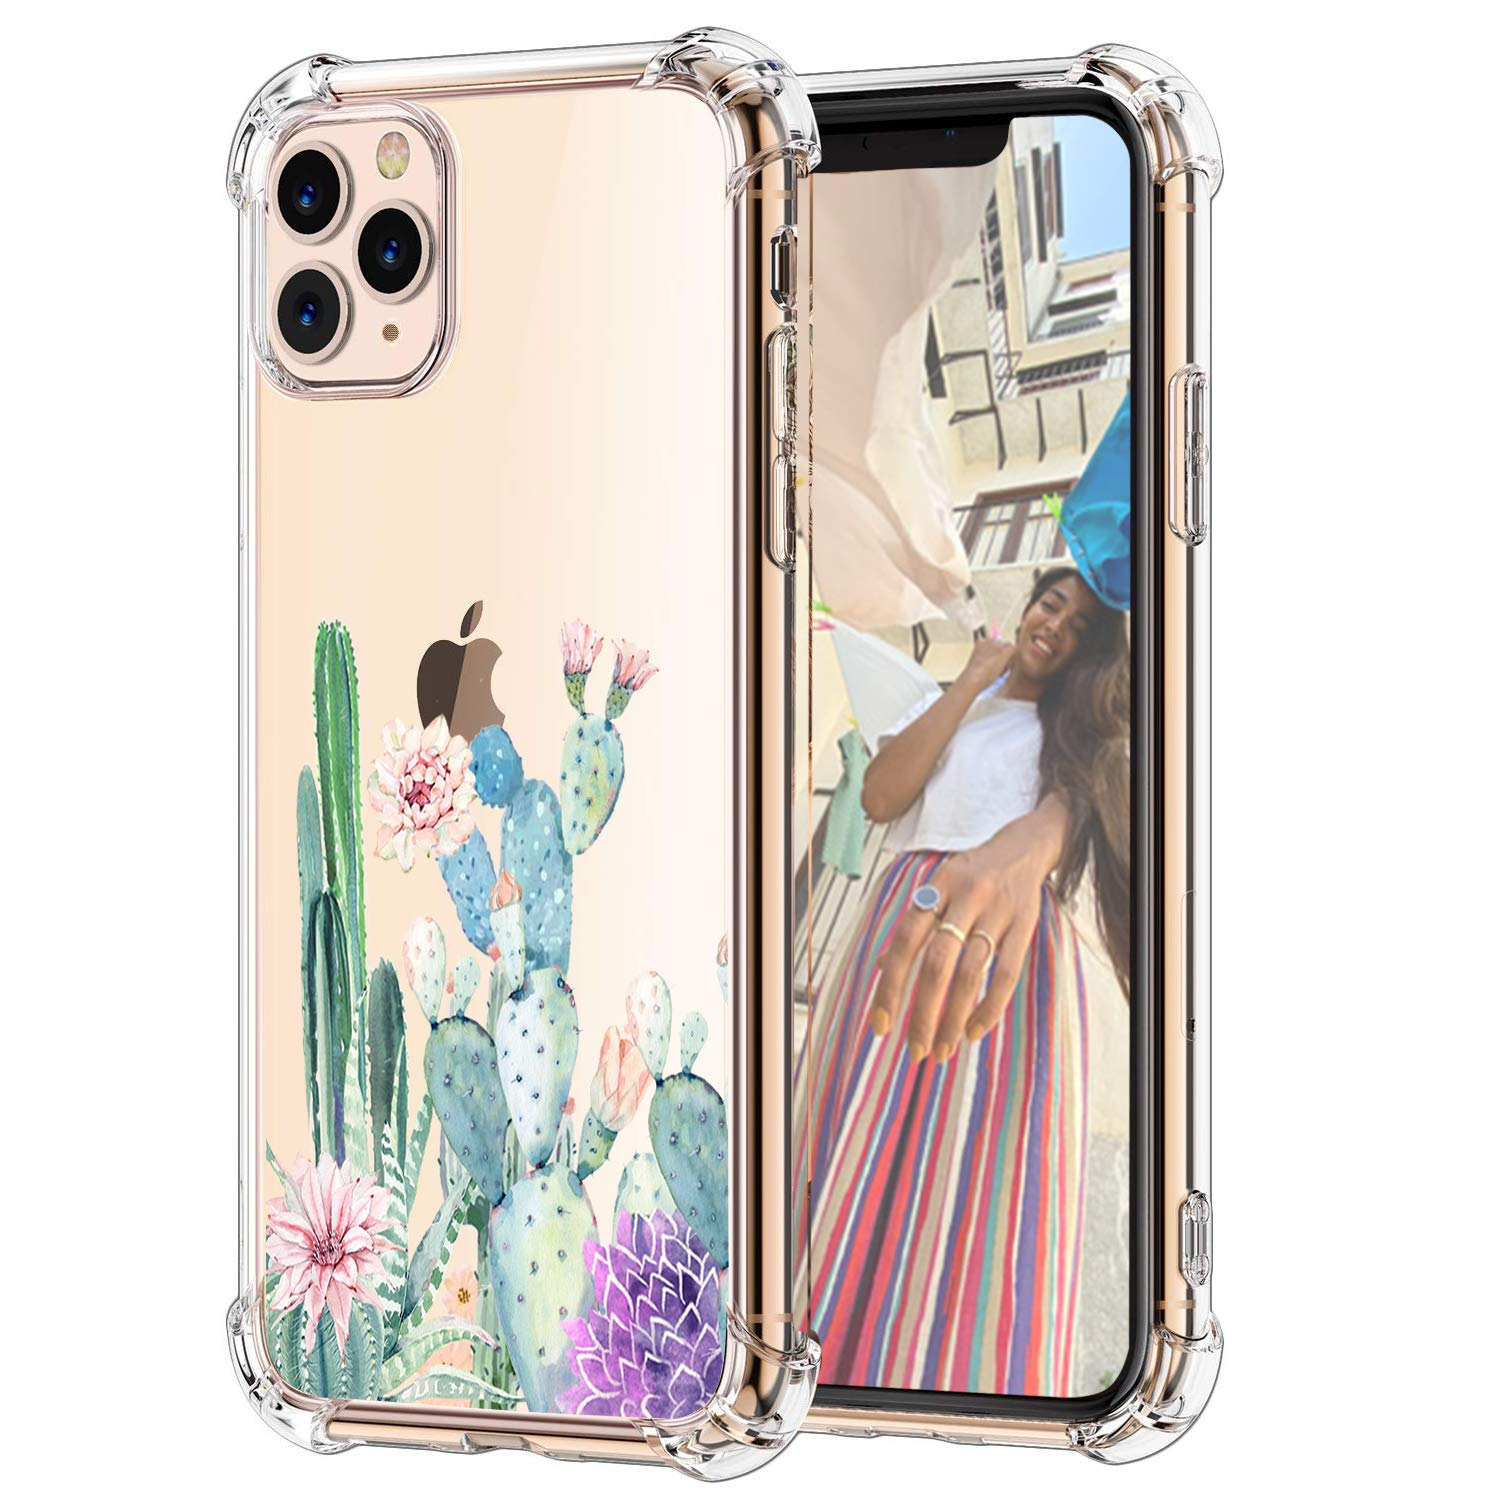 """Hepix Cactus iPhone 11 Pro Case Cute Cacti Flowers Clear Pro 11 Cases for Girls Women, Slim Flexible TPU with 4 Protective Corners Anti-Scratch Rasied Lip Shock Absorbing for iPhone 11 Pro (5.8"""")"""